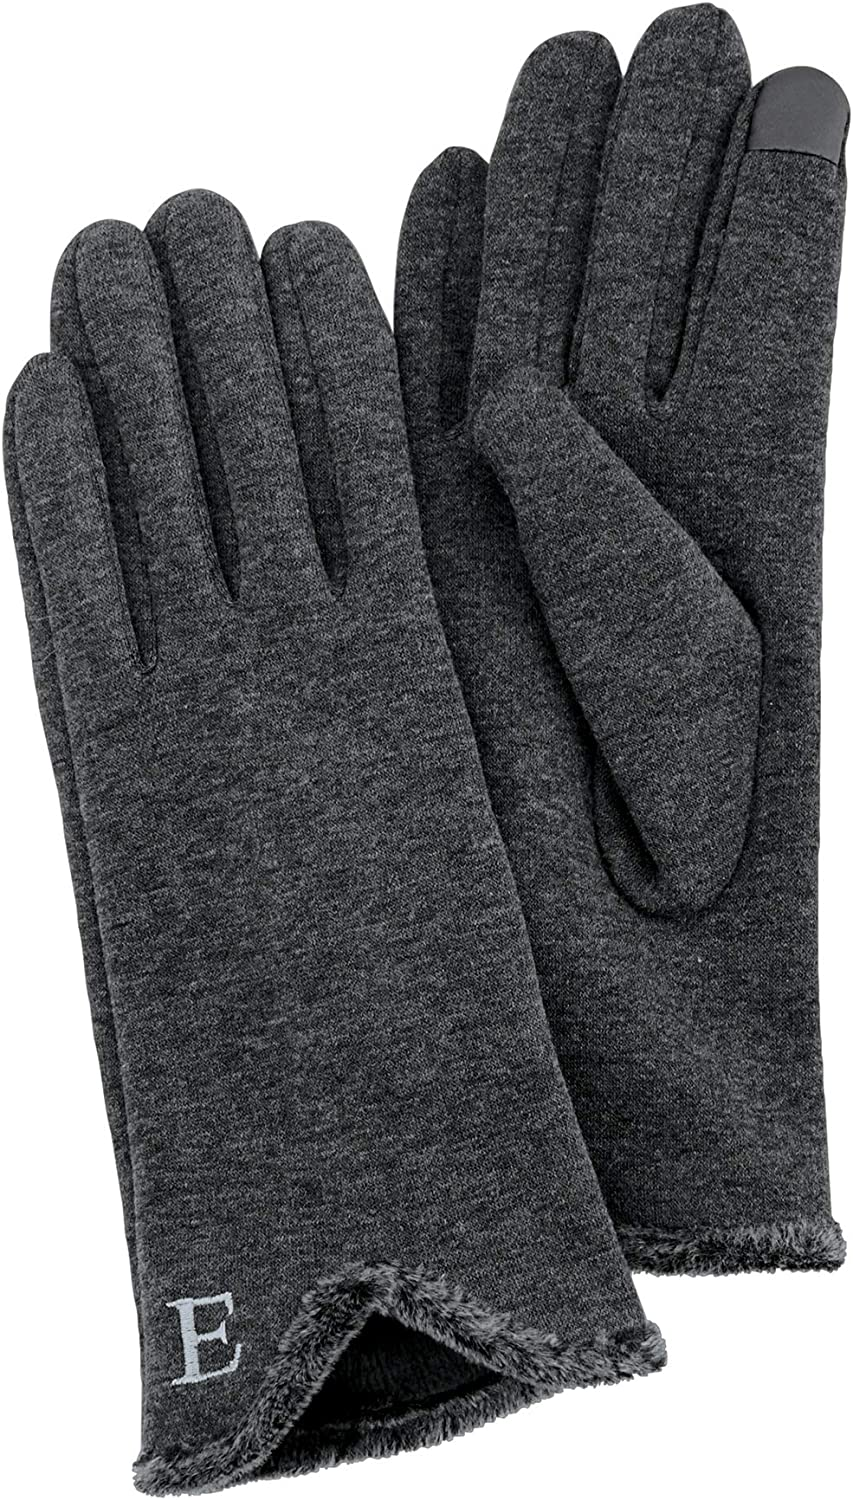 Mud Pie Women's Smart Screen Initial Letter Gloves, Gray, One Size